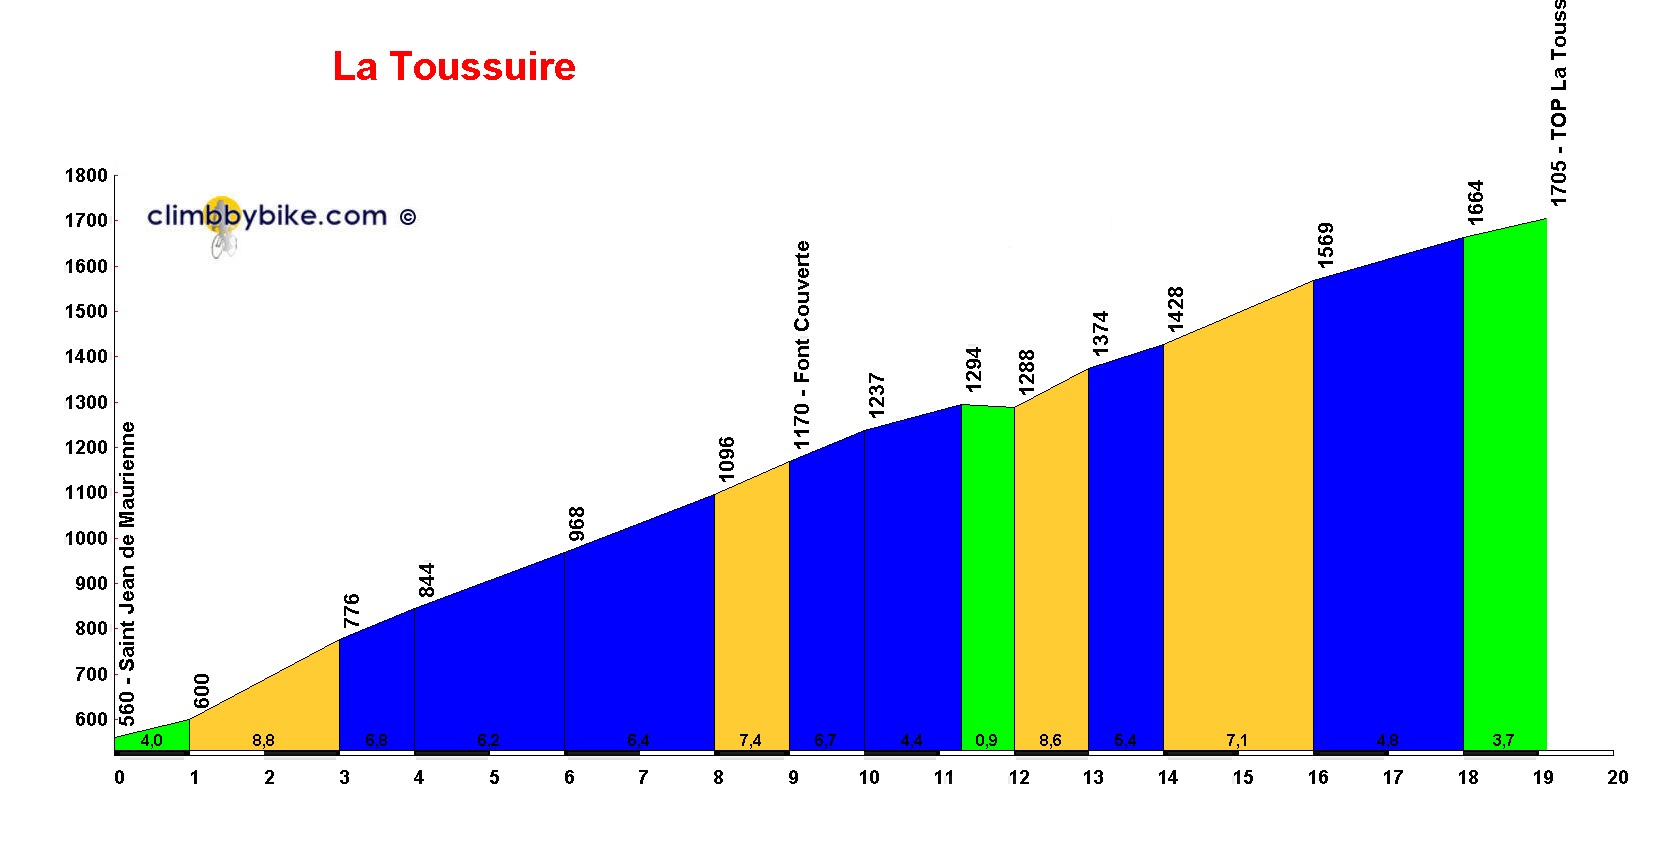 Elevation profile for La Toussuire